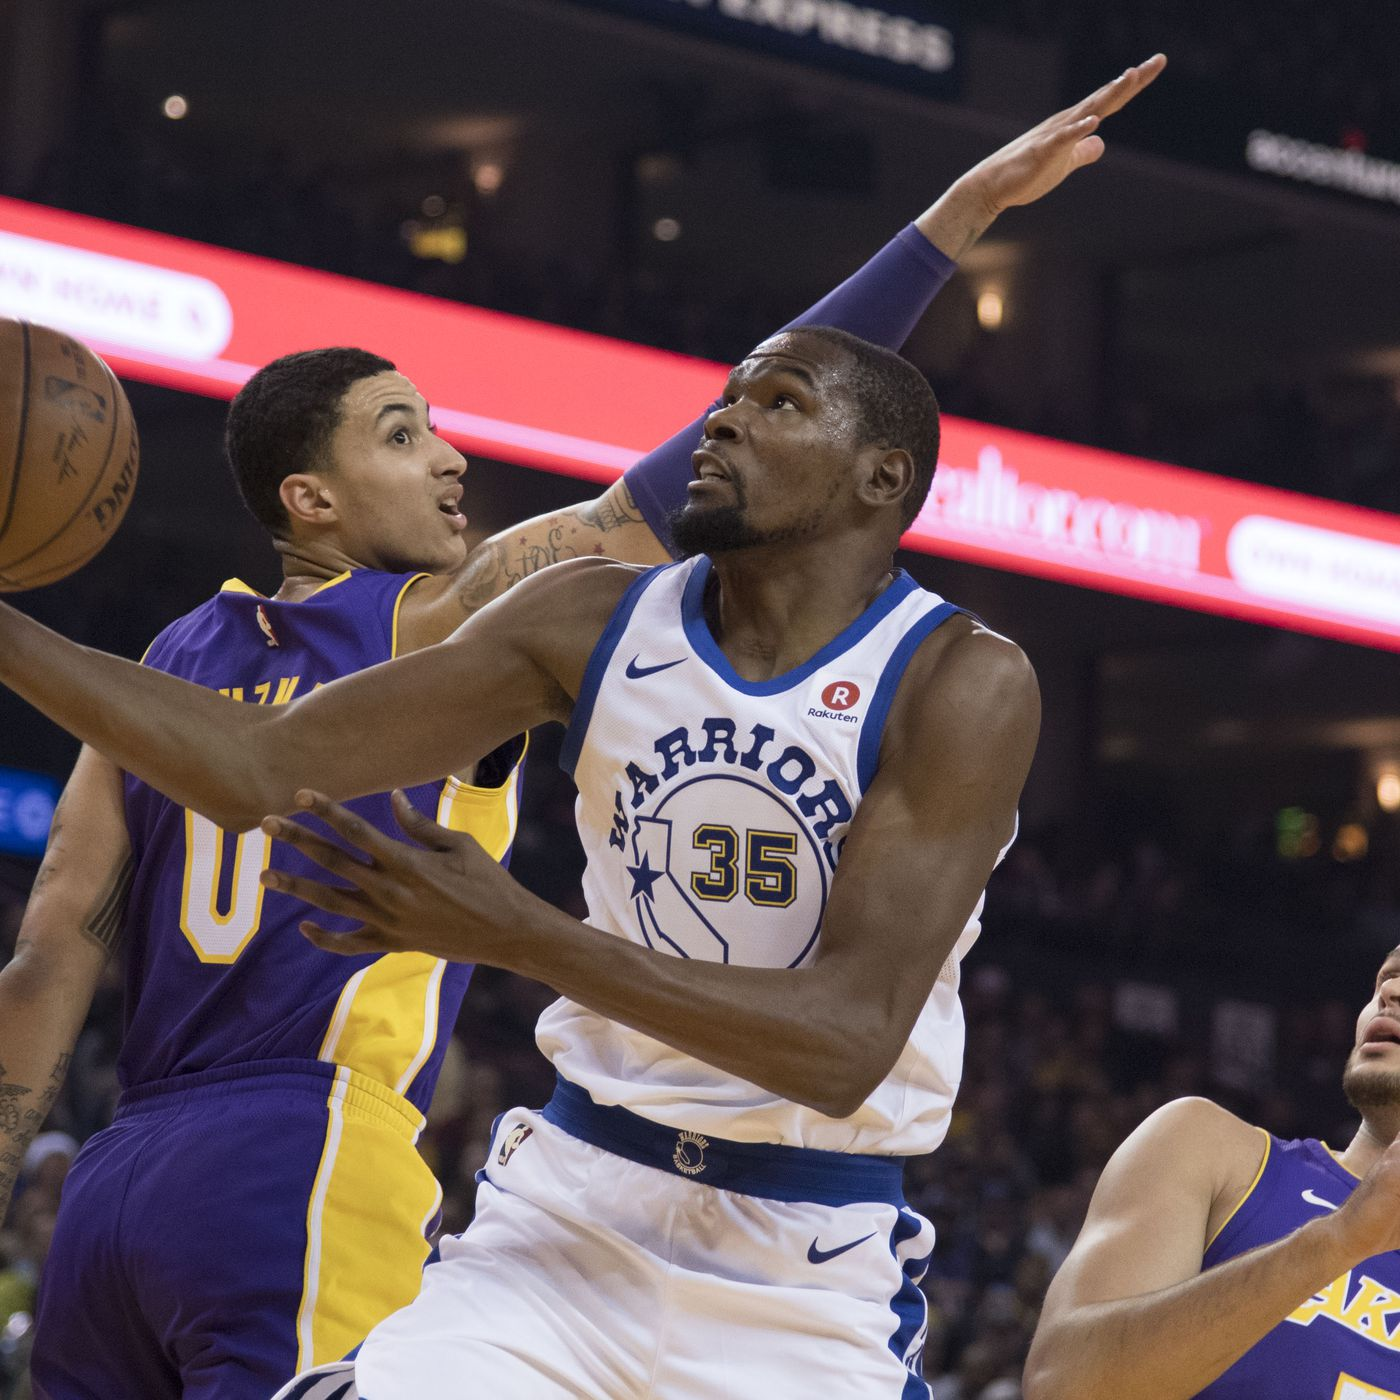 d89eb9f94d1 Lakers News  Kyle Kuzma says he changed his jersey number because of Kevin  Durant